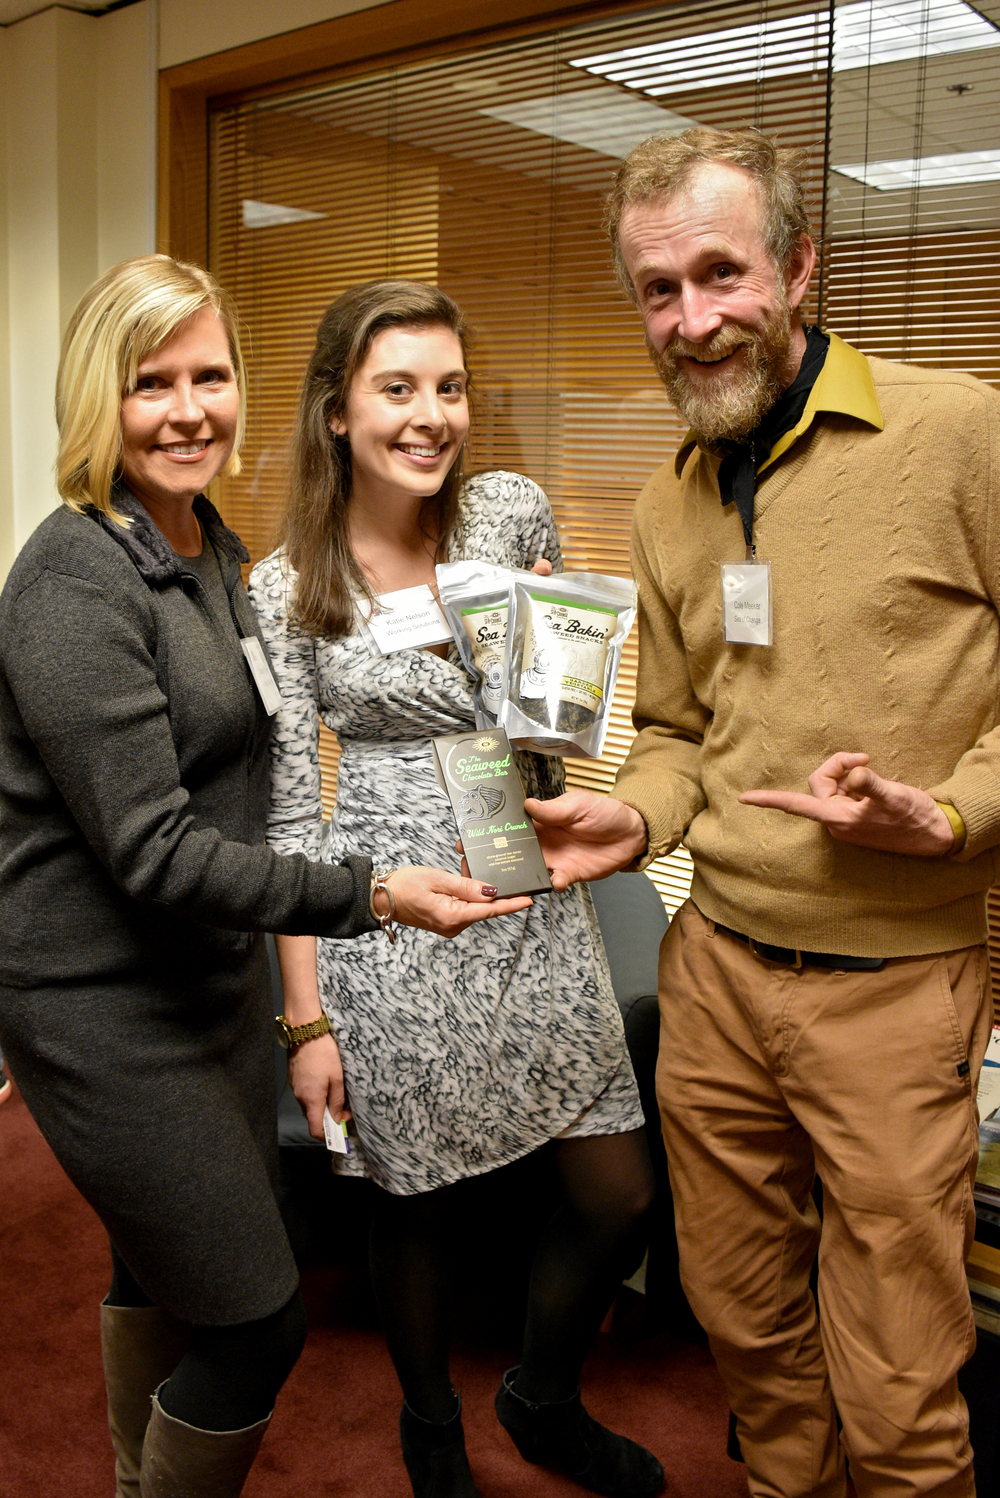 Cole Meeker of Sea of Change Trading Company shows off his seaweed snacks and seaweed chocolate bar to Working Solutions Director of Business Development Laurie O'Hara and Marketing & Development Associate Katie Nelson